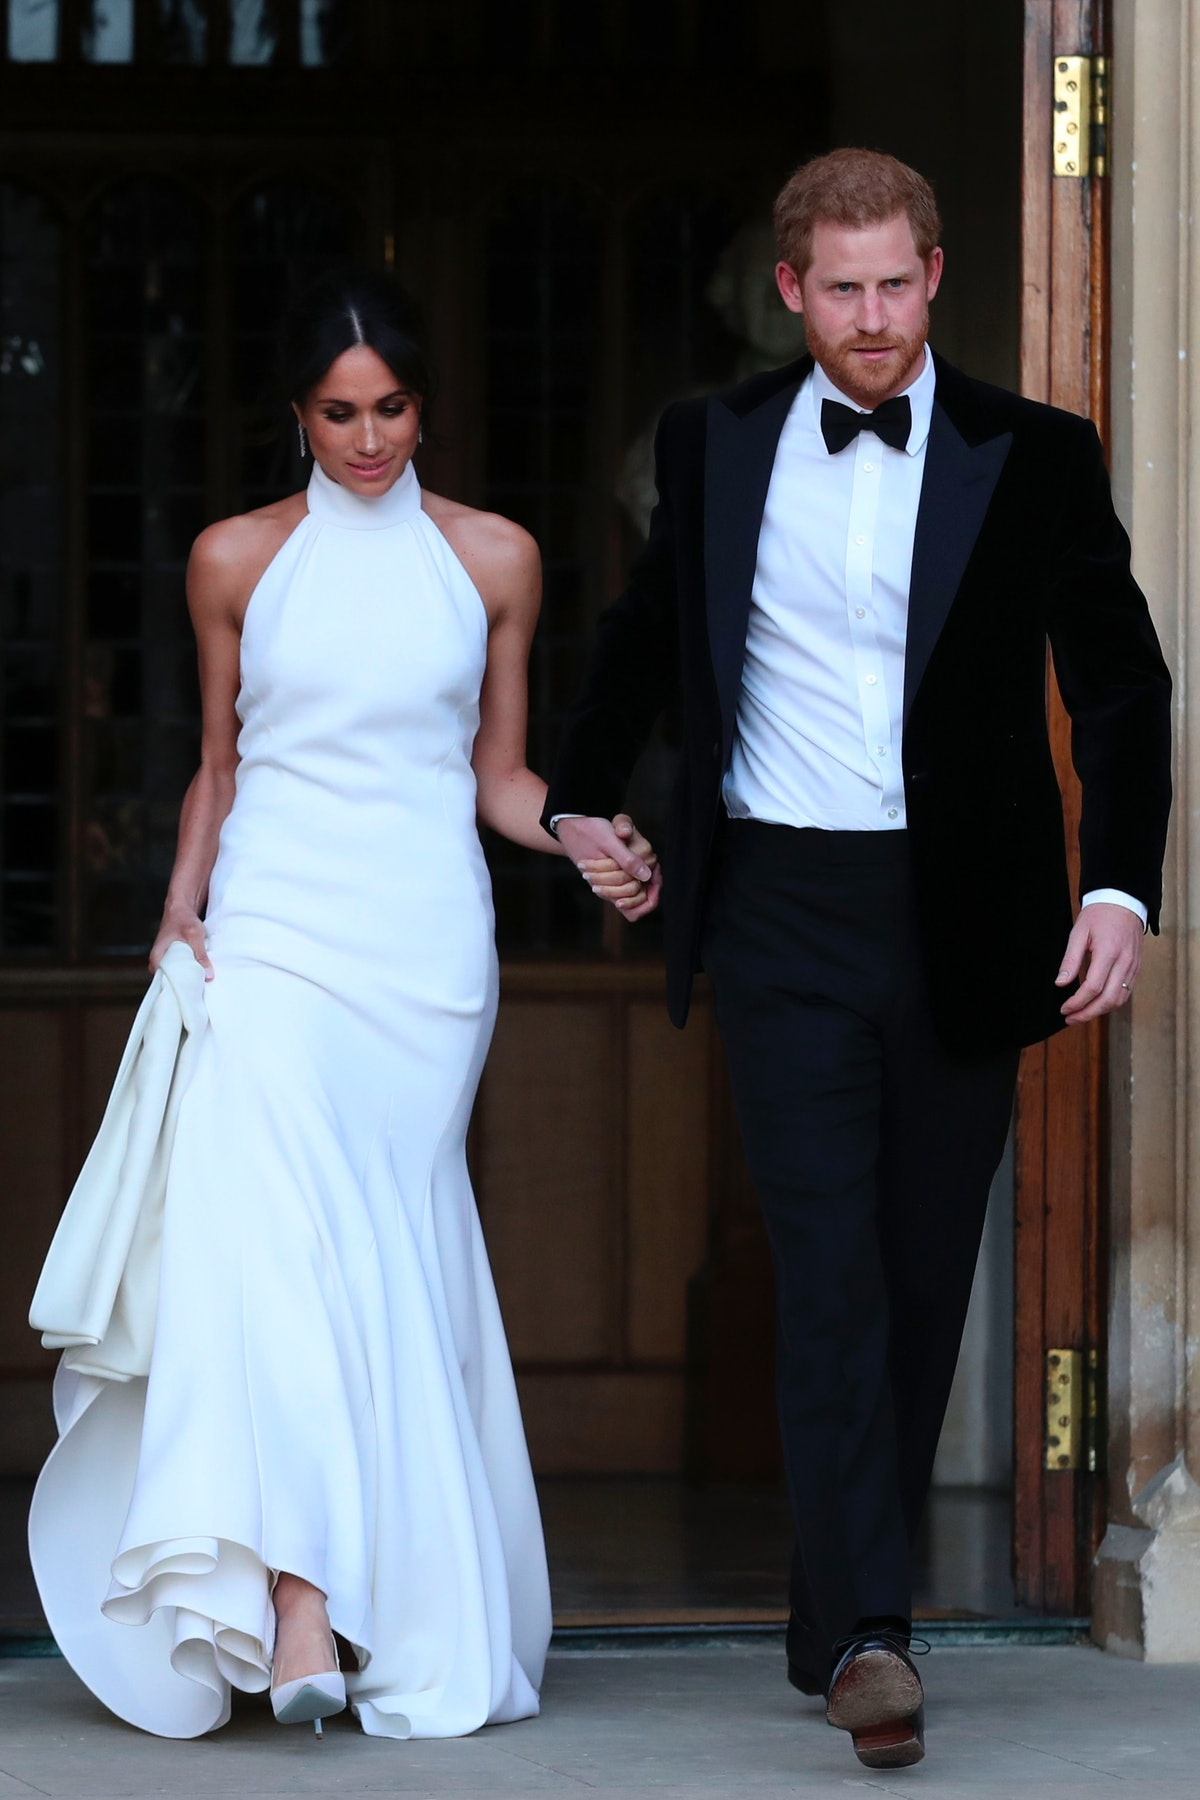 Meghan Markle wore a halter neck dress from Stella McCartney for the reception of her wedding in May...